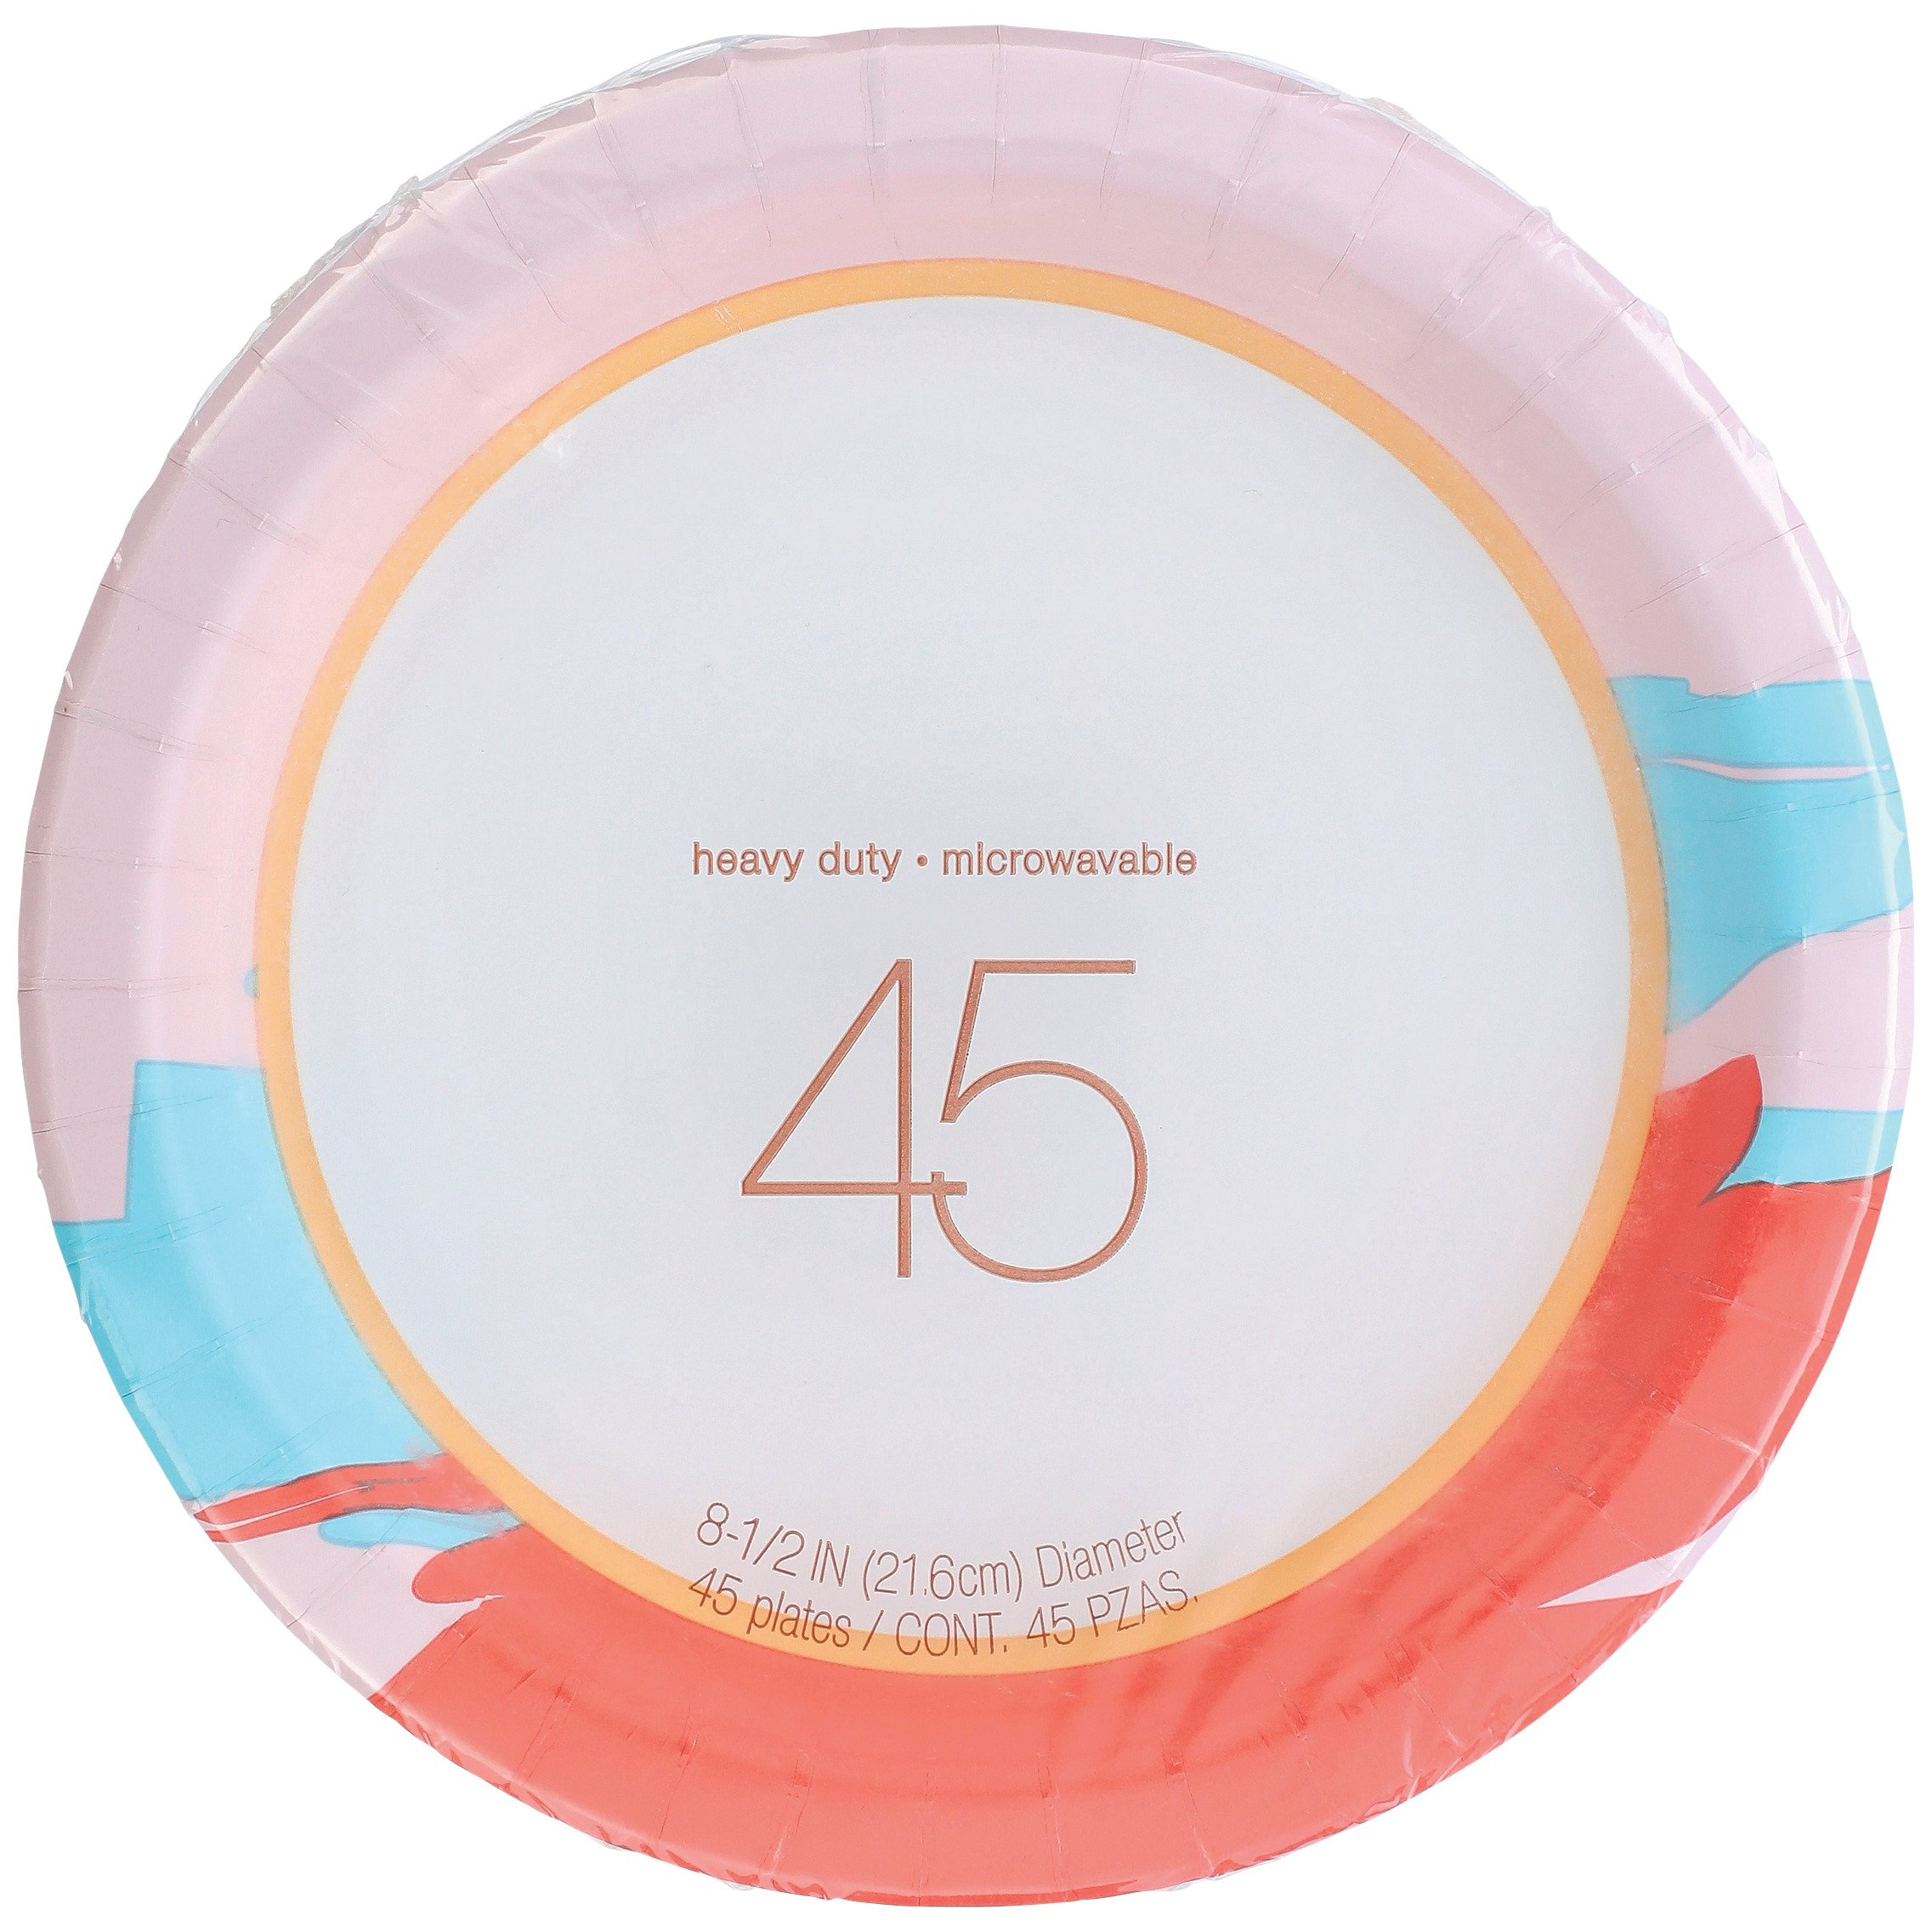 Disposable Tableware - Shop HEB Everyday Low Prices Online